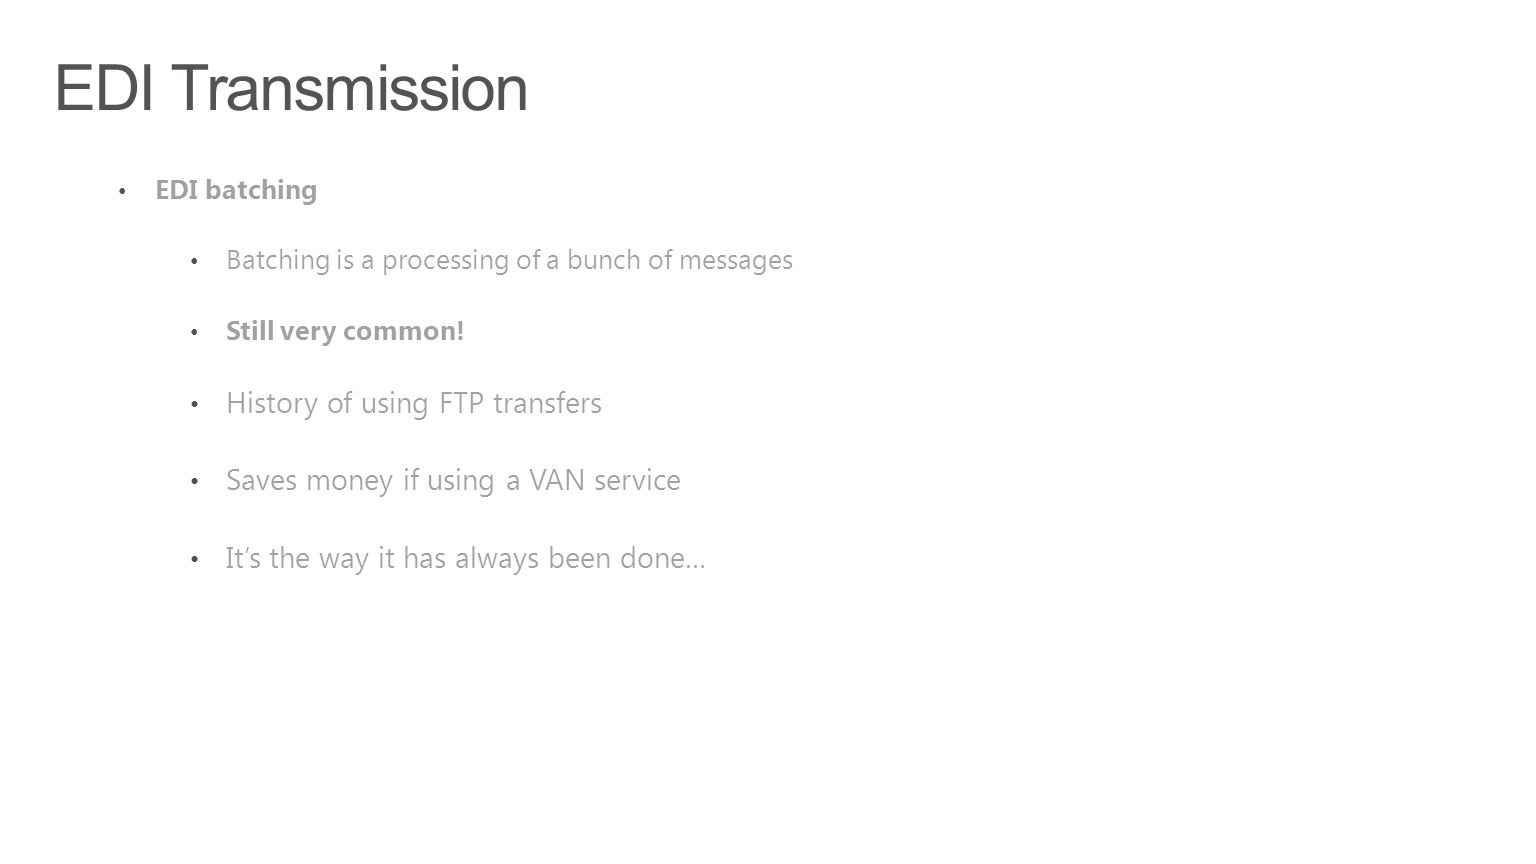 EDI Transmission History of using FTP transfers